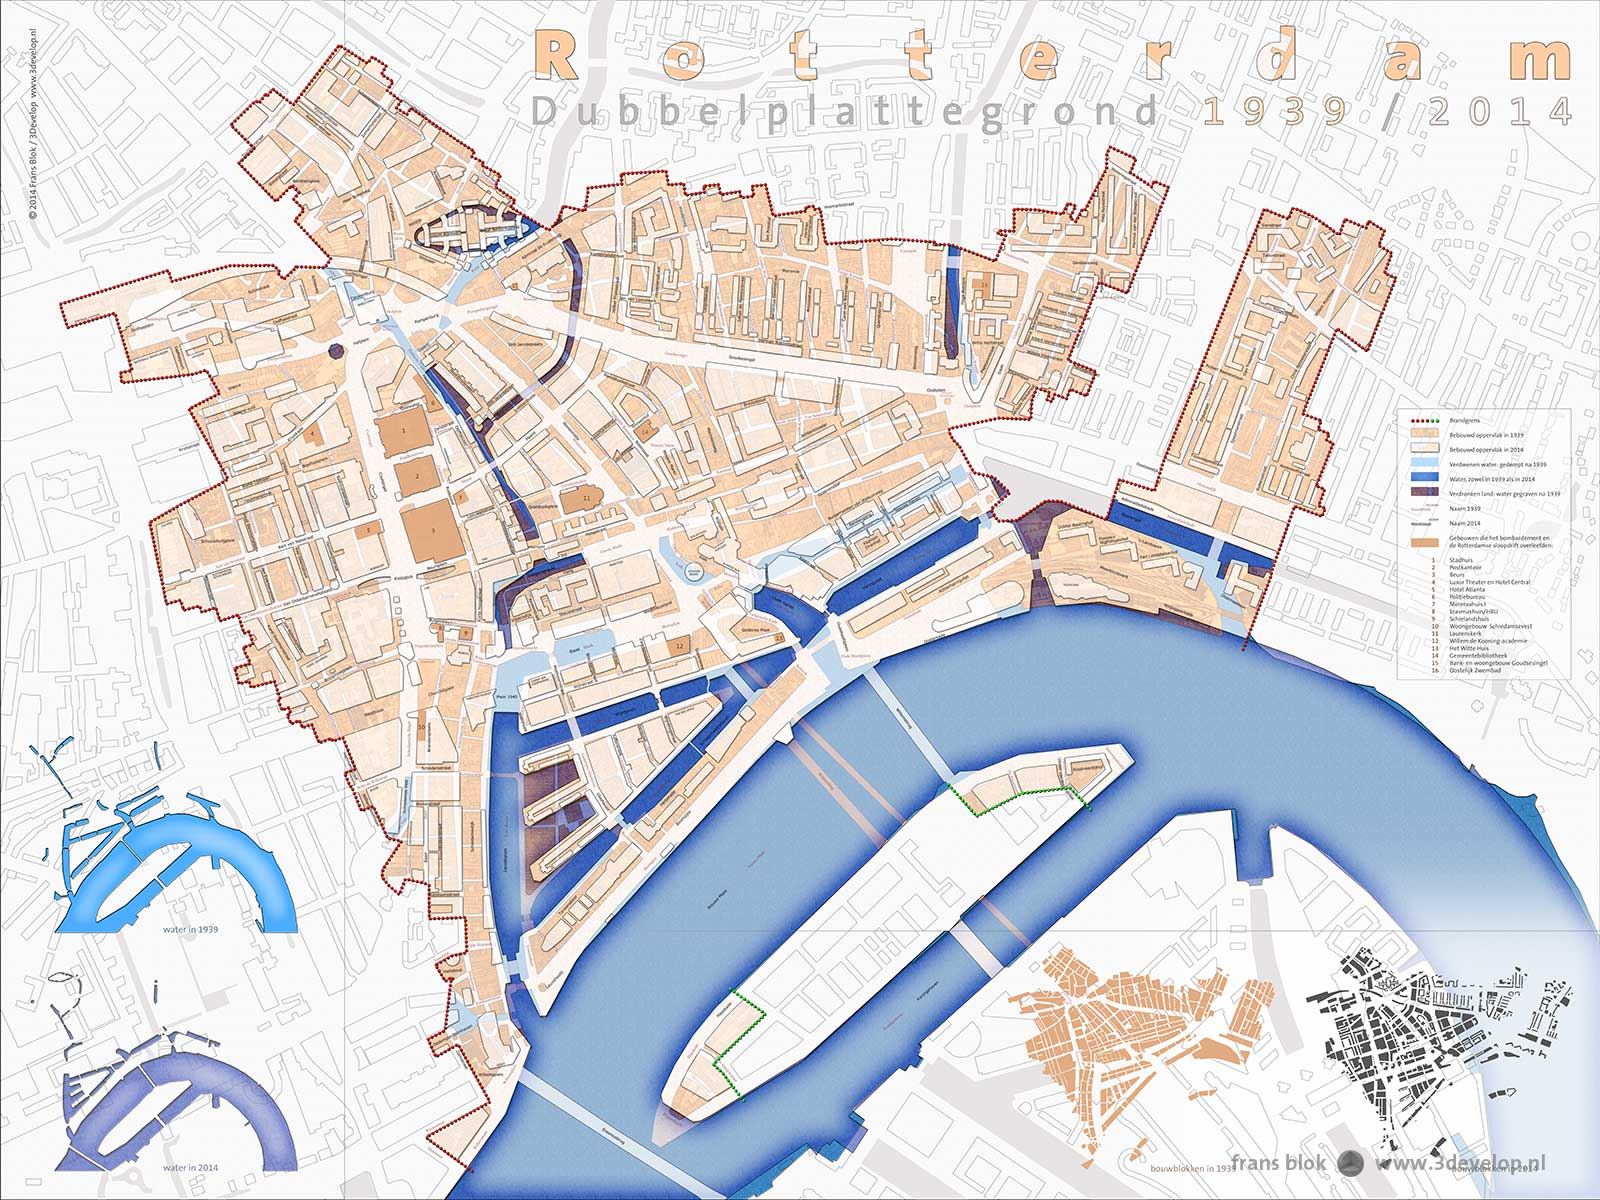 Double plan of Rotterdam: the cities of 1939 and 2014 juxtaposed